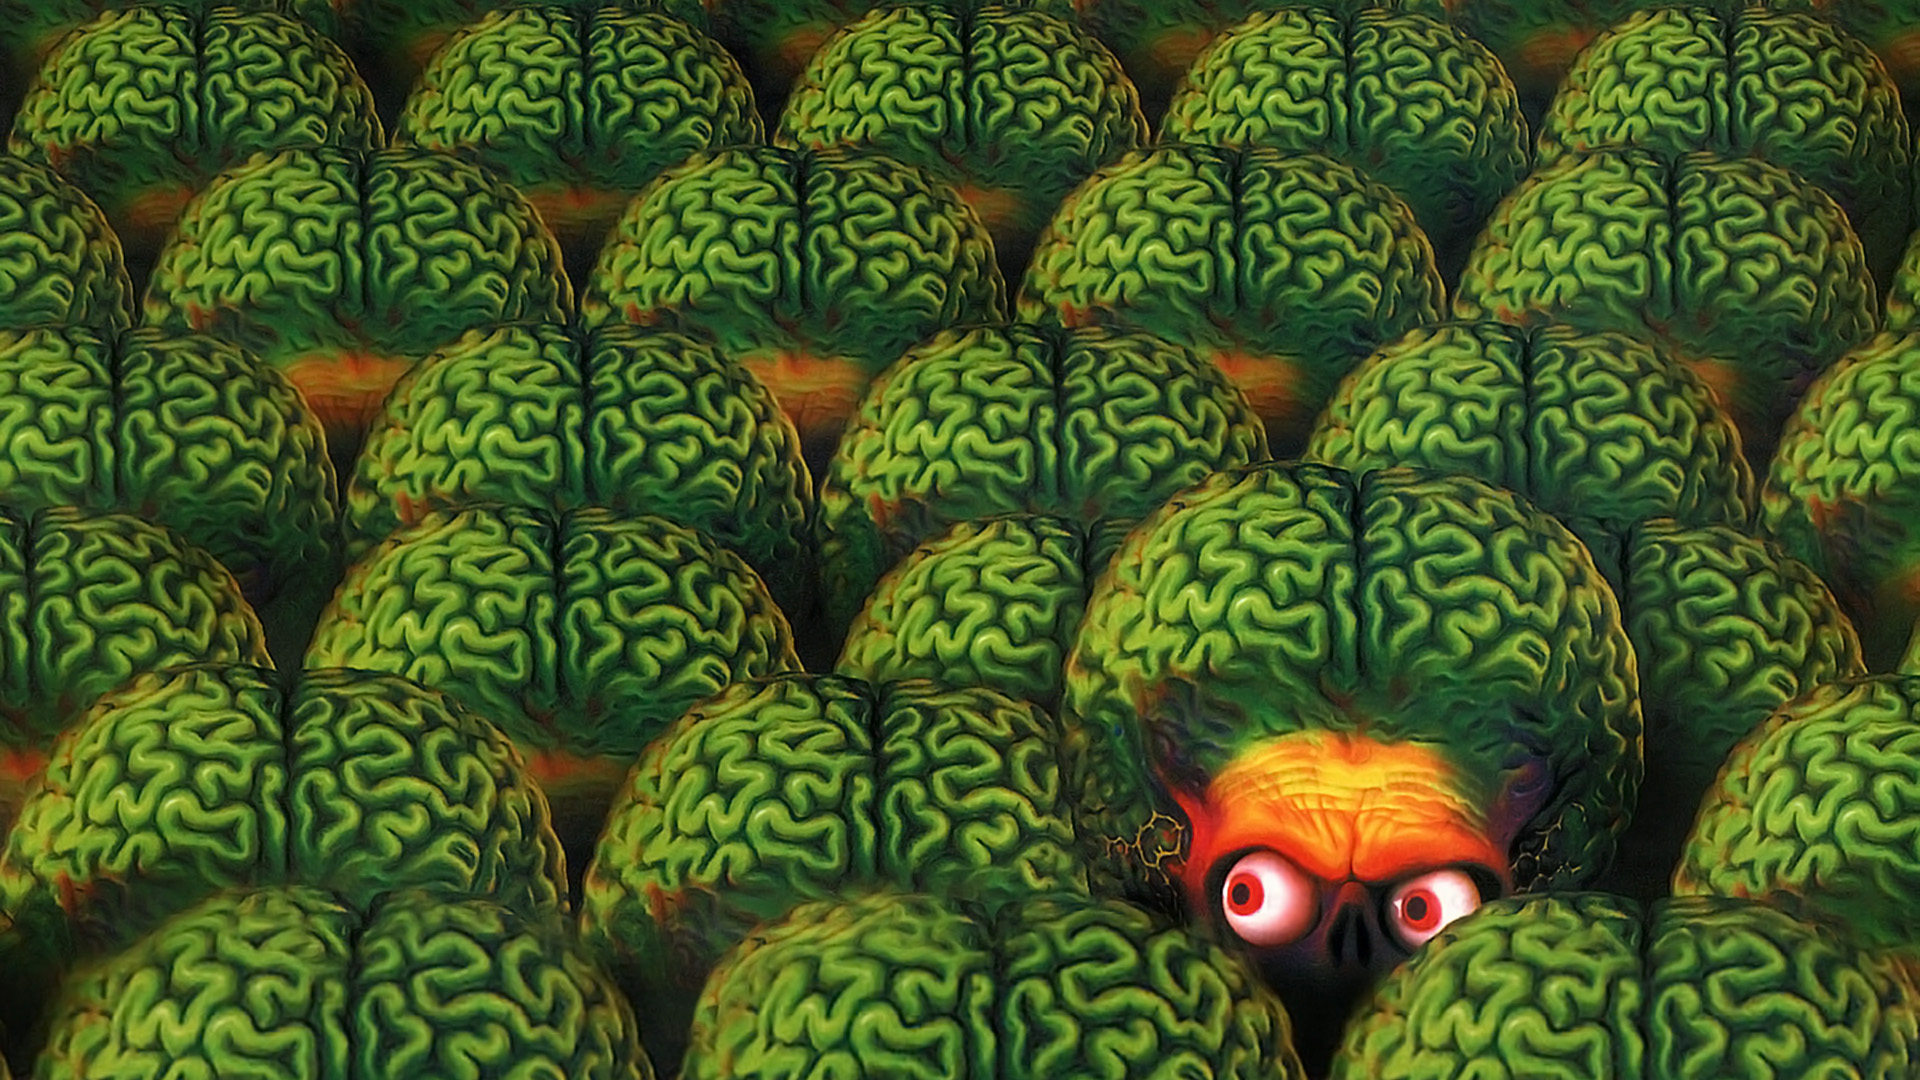 Fall Wallpaper 1600x900 Mars Attacks Full Hd Wallpaper And Background Image